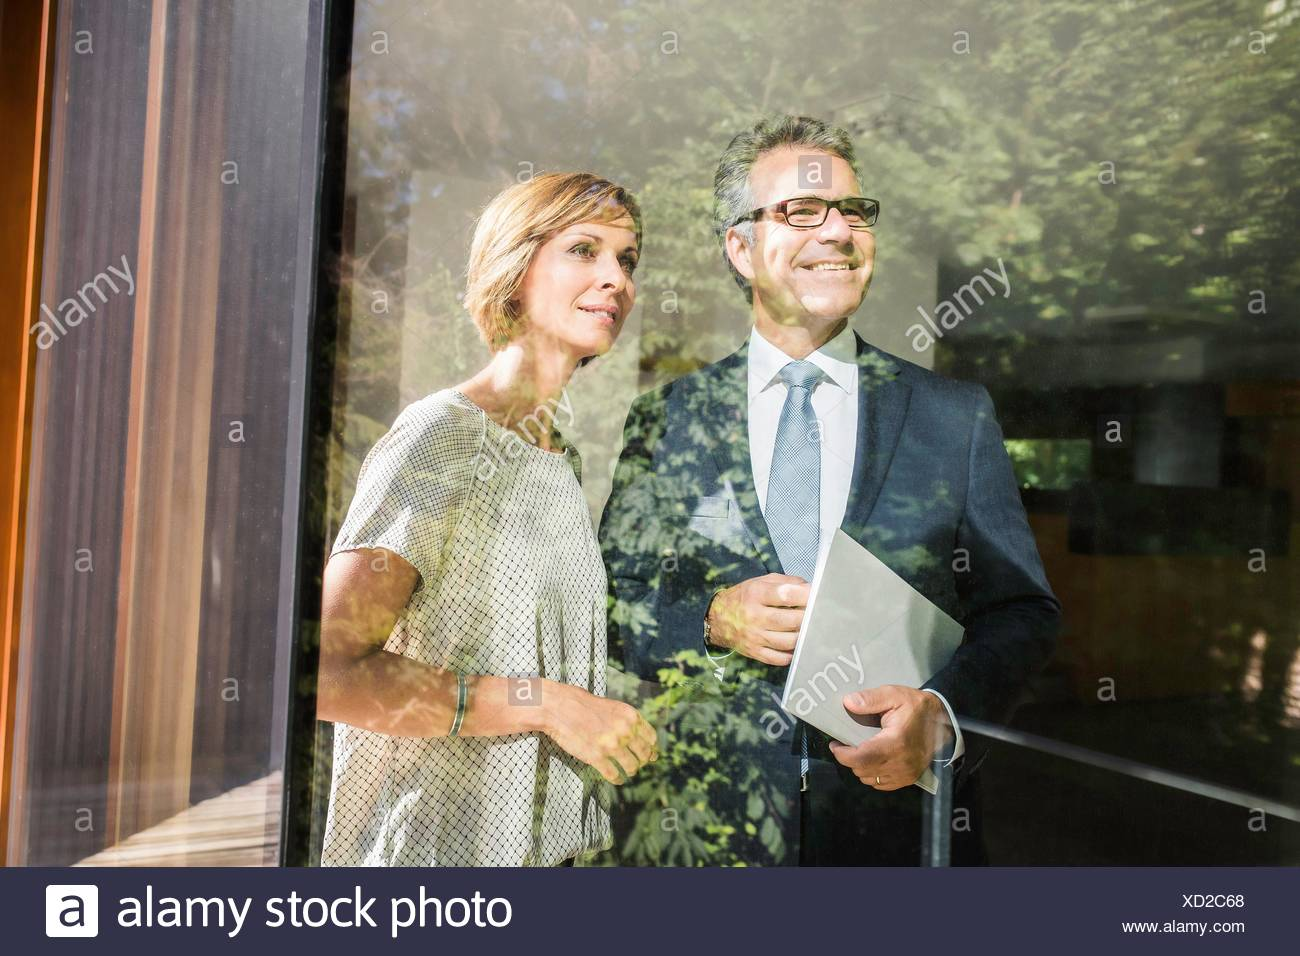 Mature woman looking through window of new house with estate agent - Stock Image